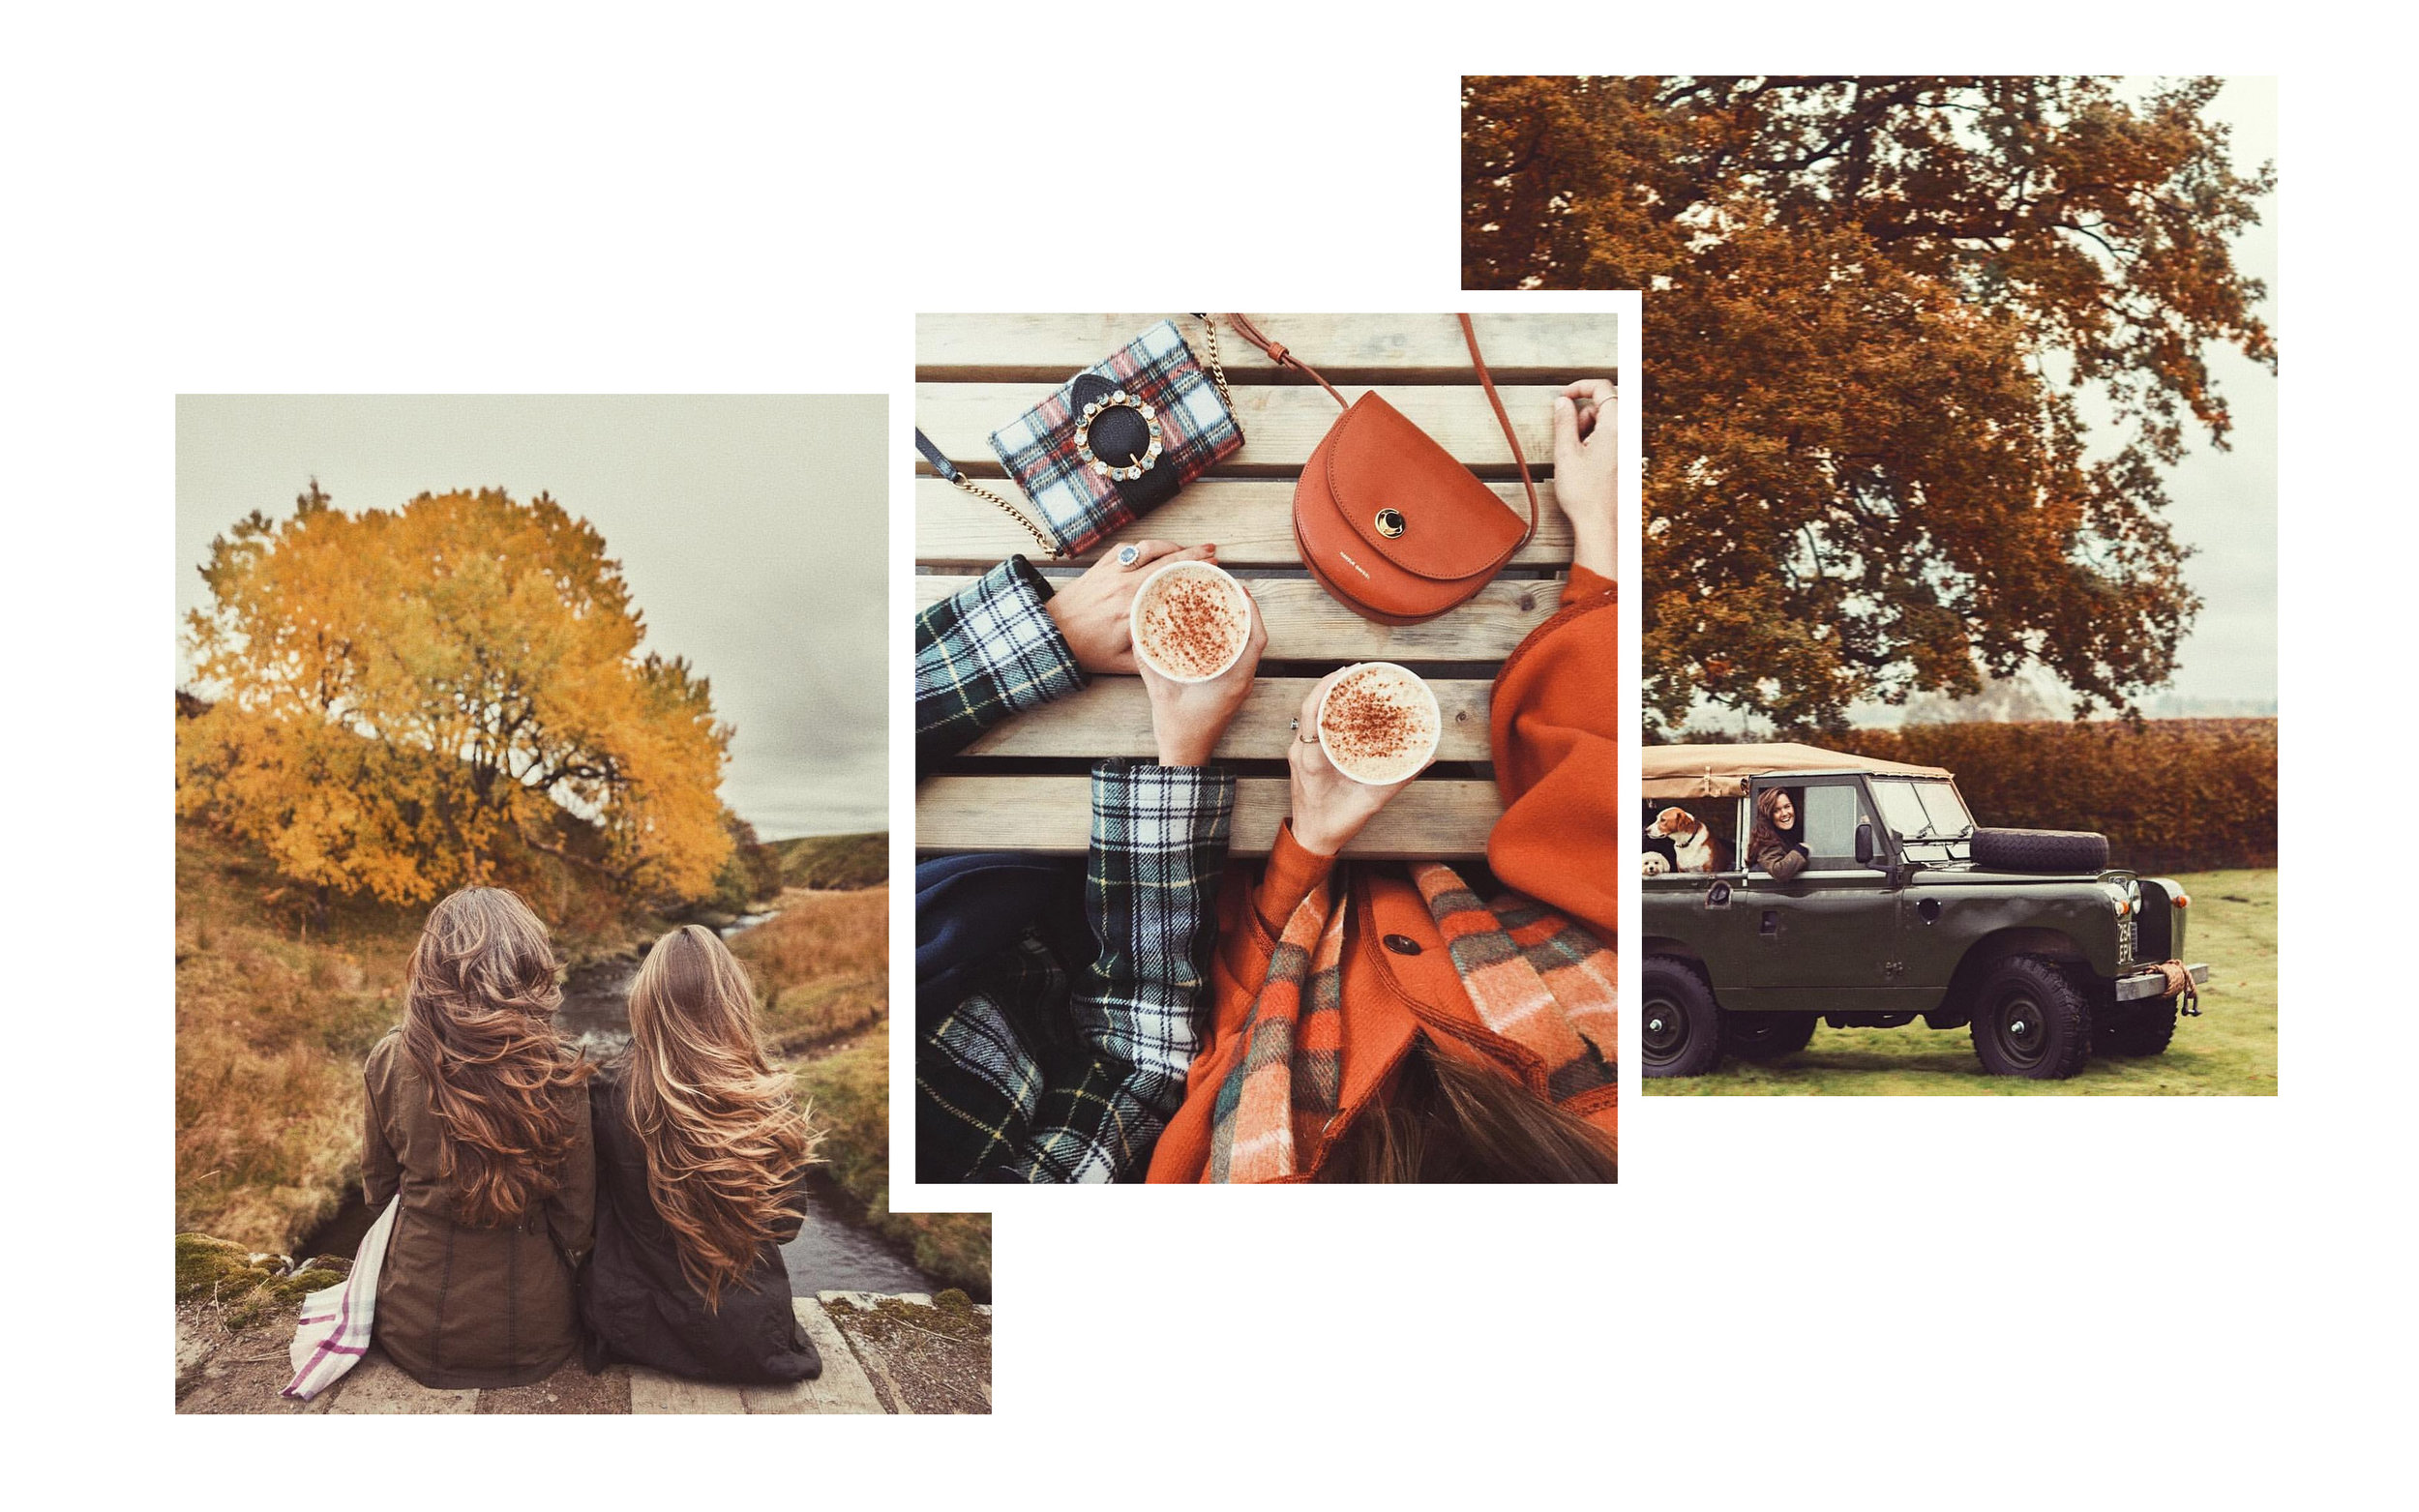 2. rosie londoner - Every time autumn rolls around, our favourite influencers fill their feeds with orange images that are evocative of that cool but cosy autumnal feeling. While 'fall' is traditionally a big deal in America – New Hampshire Road trip anyone? – Rosie's posts prove autumn is just as beautiful in the UK as it is abroad. Follow here: rosielondoner